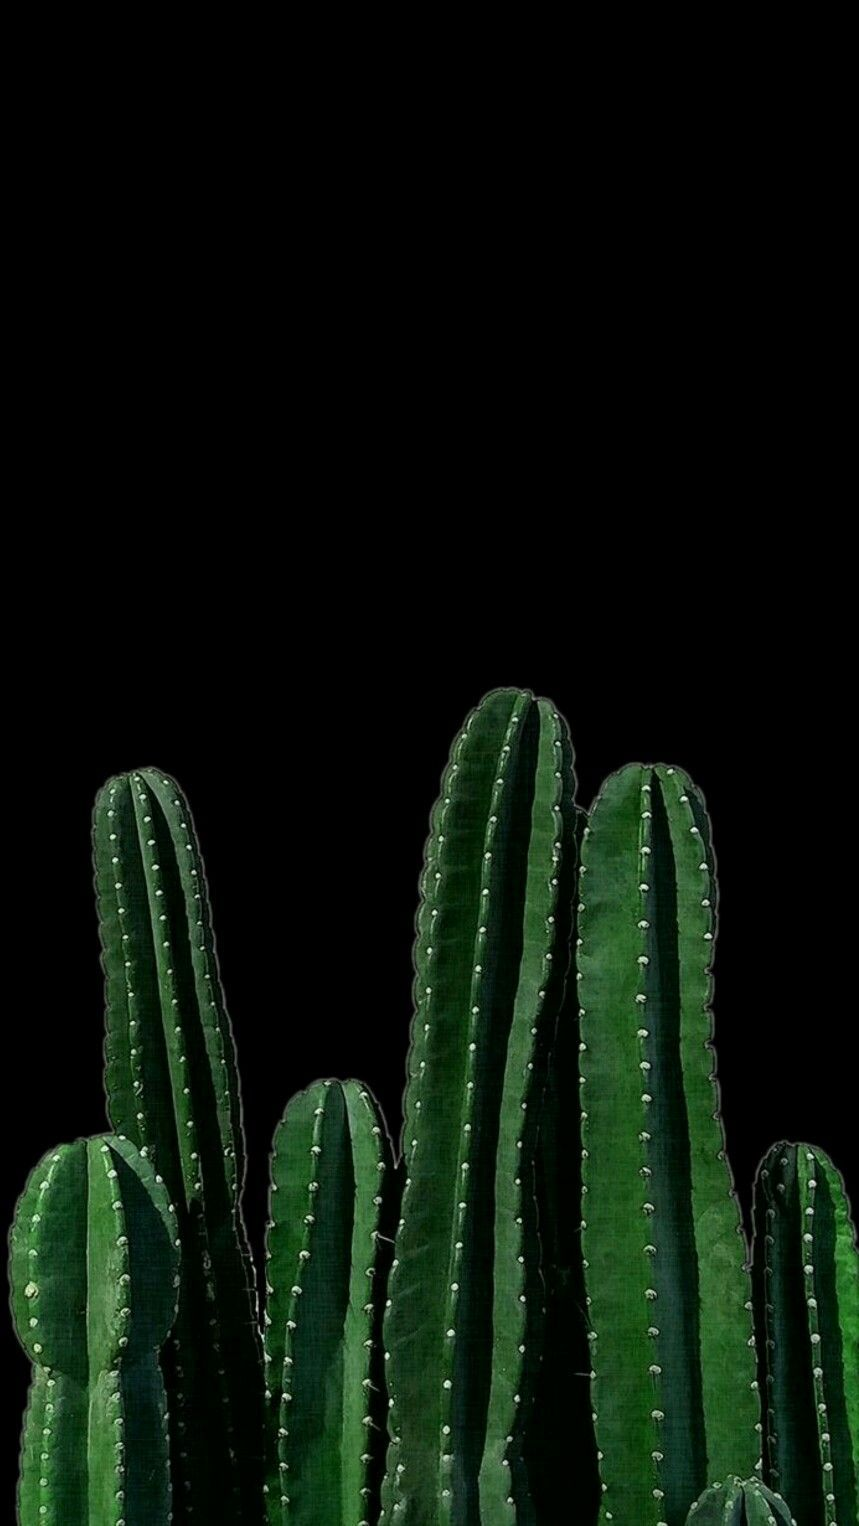 Cactus green san pedro cactus saguaro plant terrestrial plant artwork in 2019 iphone - San pedro wallpaper ...